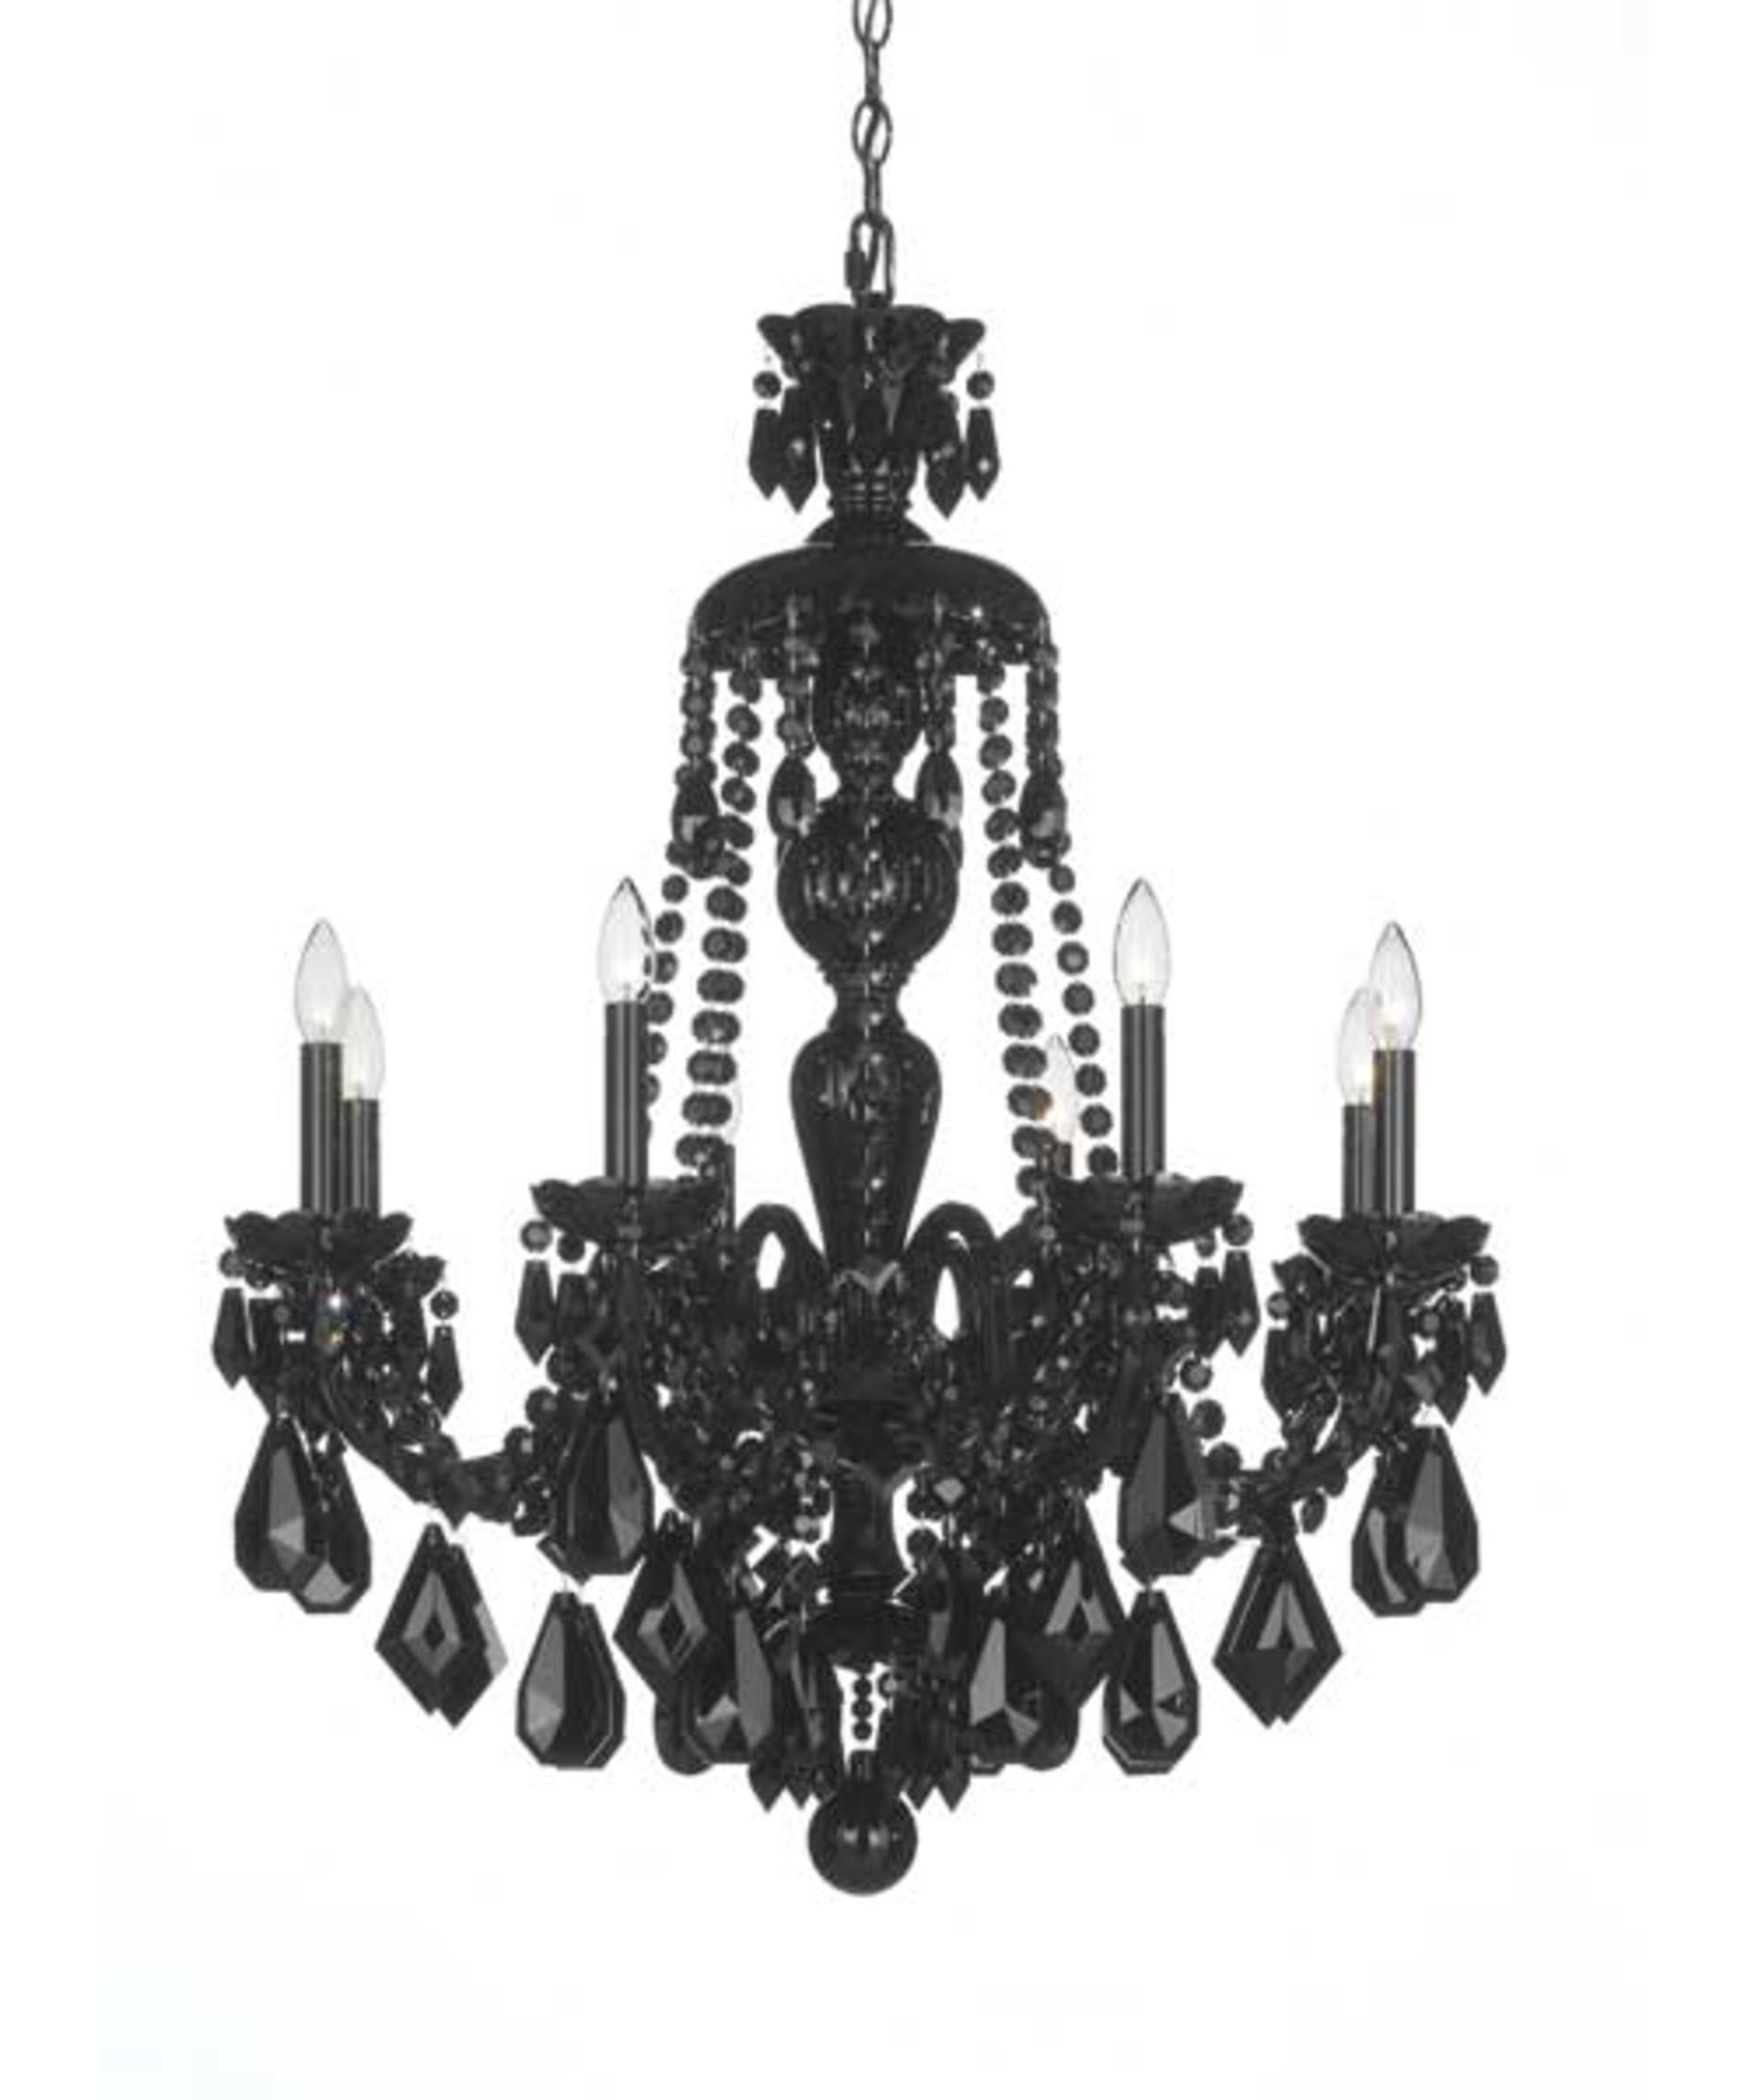 Schonbek 5737Bk Hamilton Black 28 Inch Wide 8 Light Chandelier Throughout Widely Used Traditional Crystal Chandeliers (View 11 of 20)